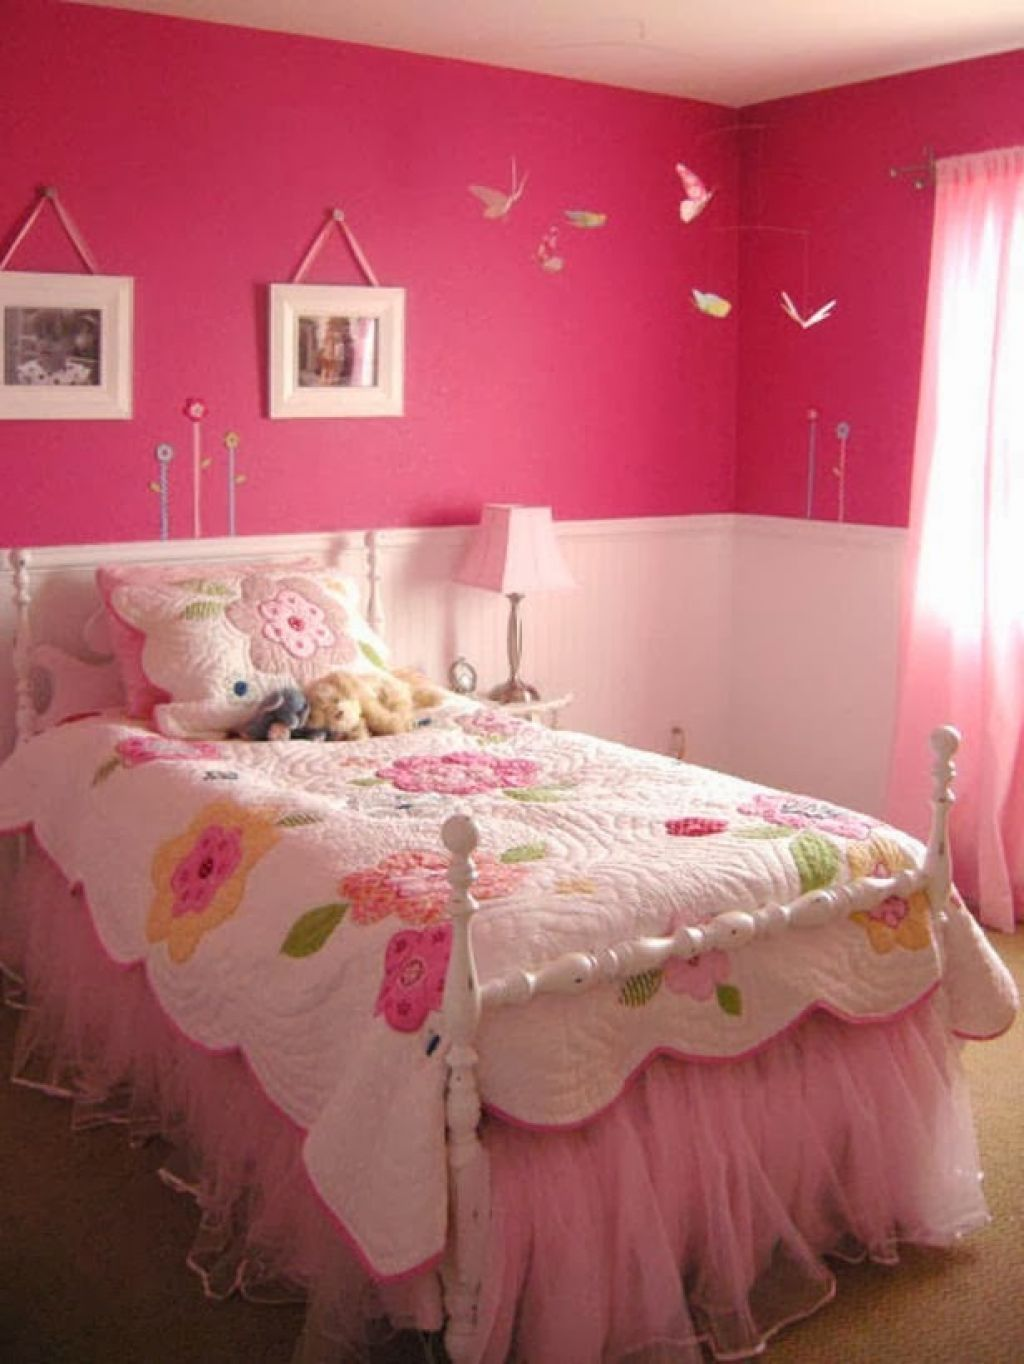 Pink bedroom paint ideas - Fascinating Girls Bedroom Ideas For Two Of Minimalist